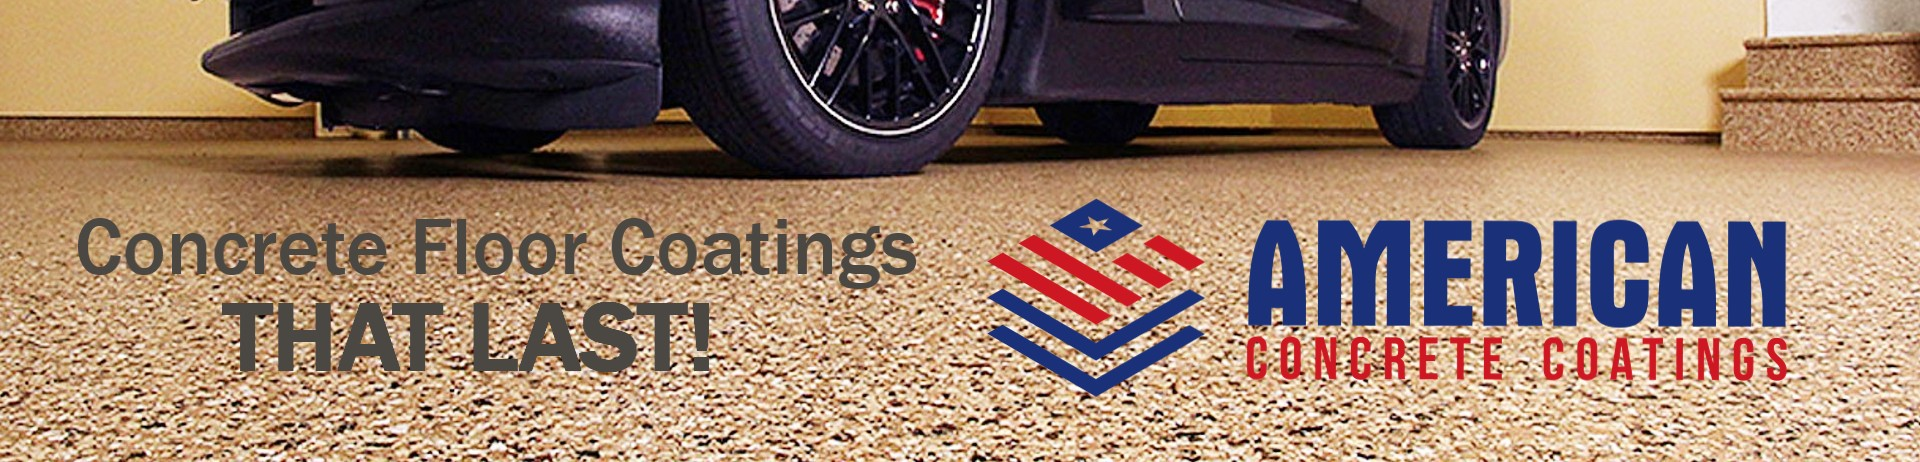 Arlington Garage Floors